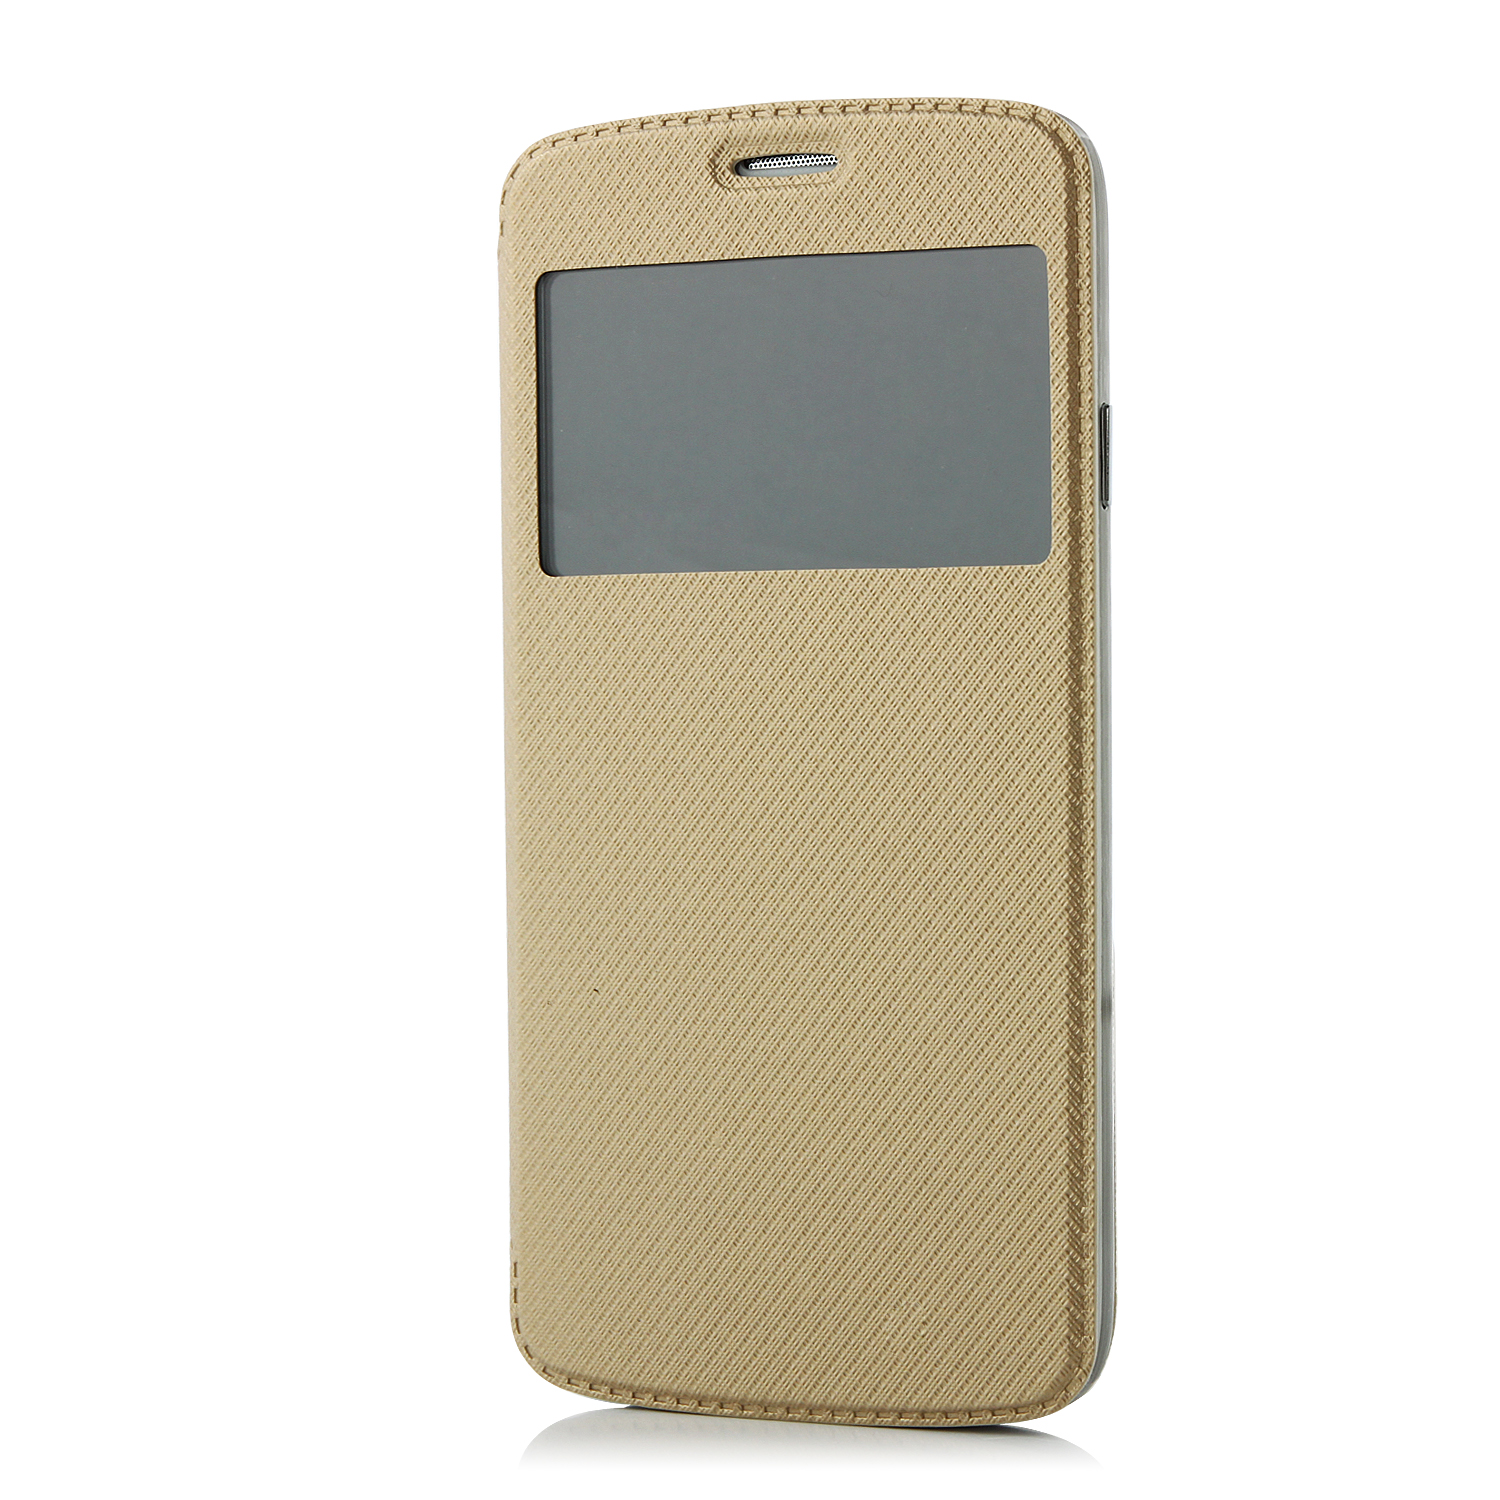 F-G906+ Smartphone Android 4.2 MTK6572W 5.0 Inch 3G GPS Gold